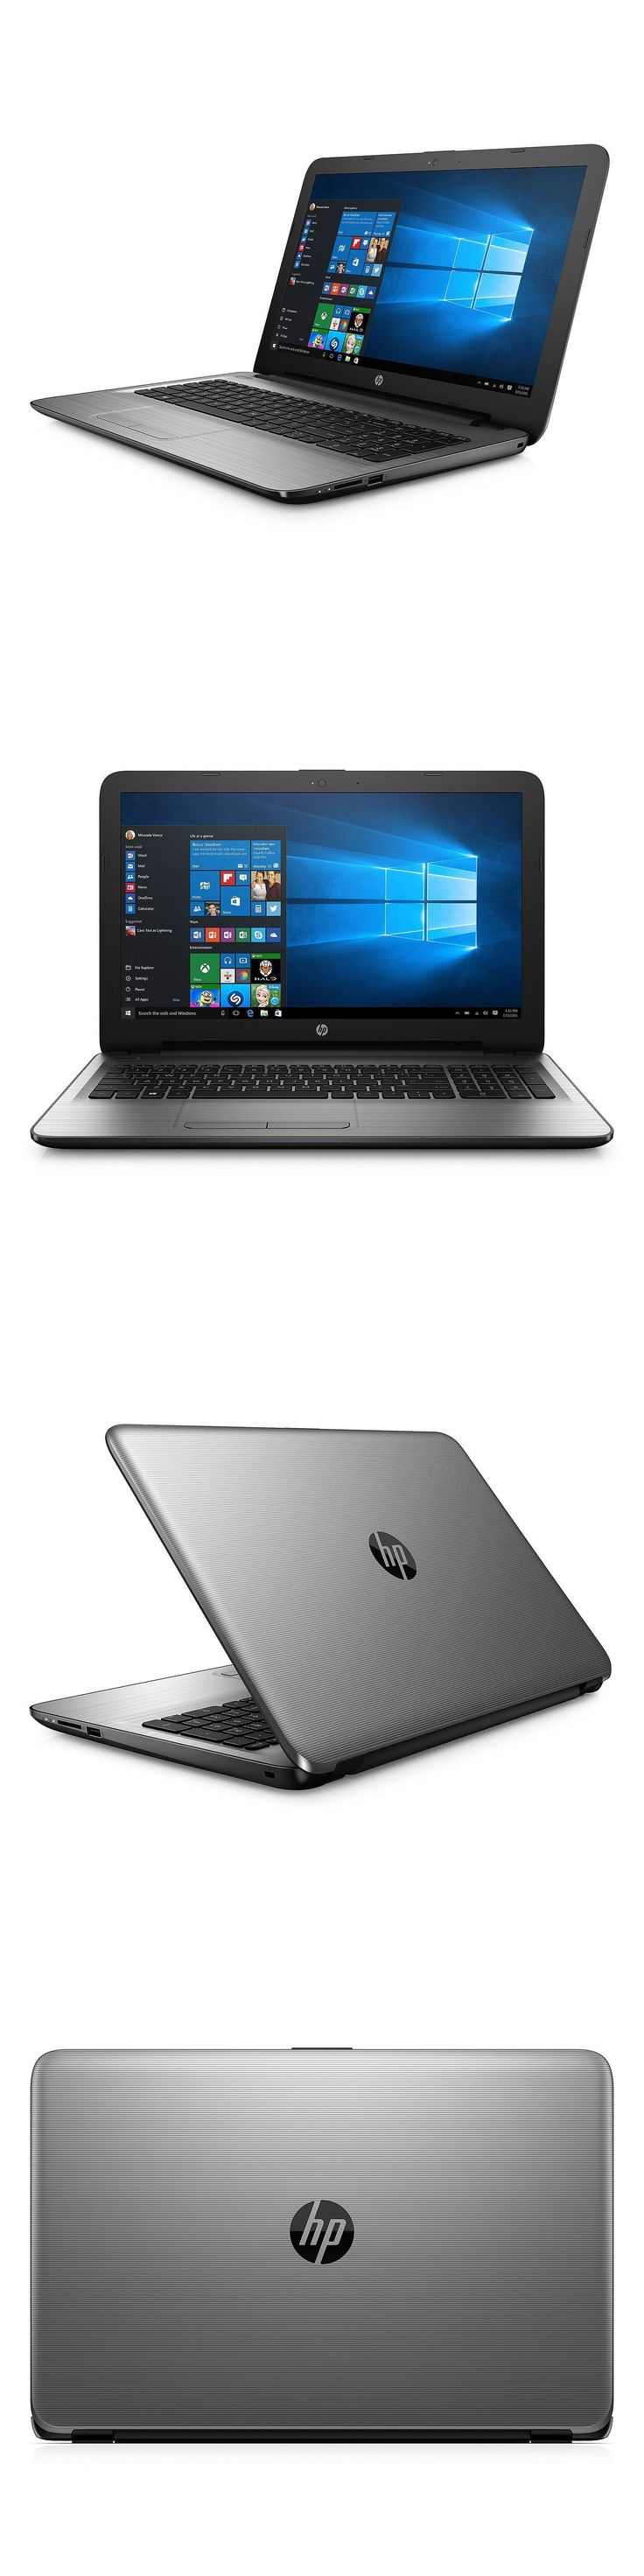 Notebook samsung expert x37 - General For Sale New Hp 15 Notebook 7th Gen Core I7